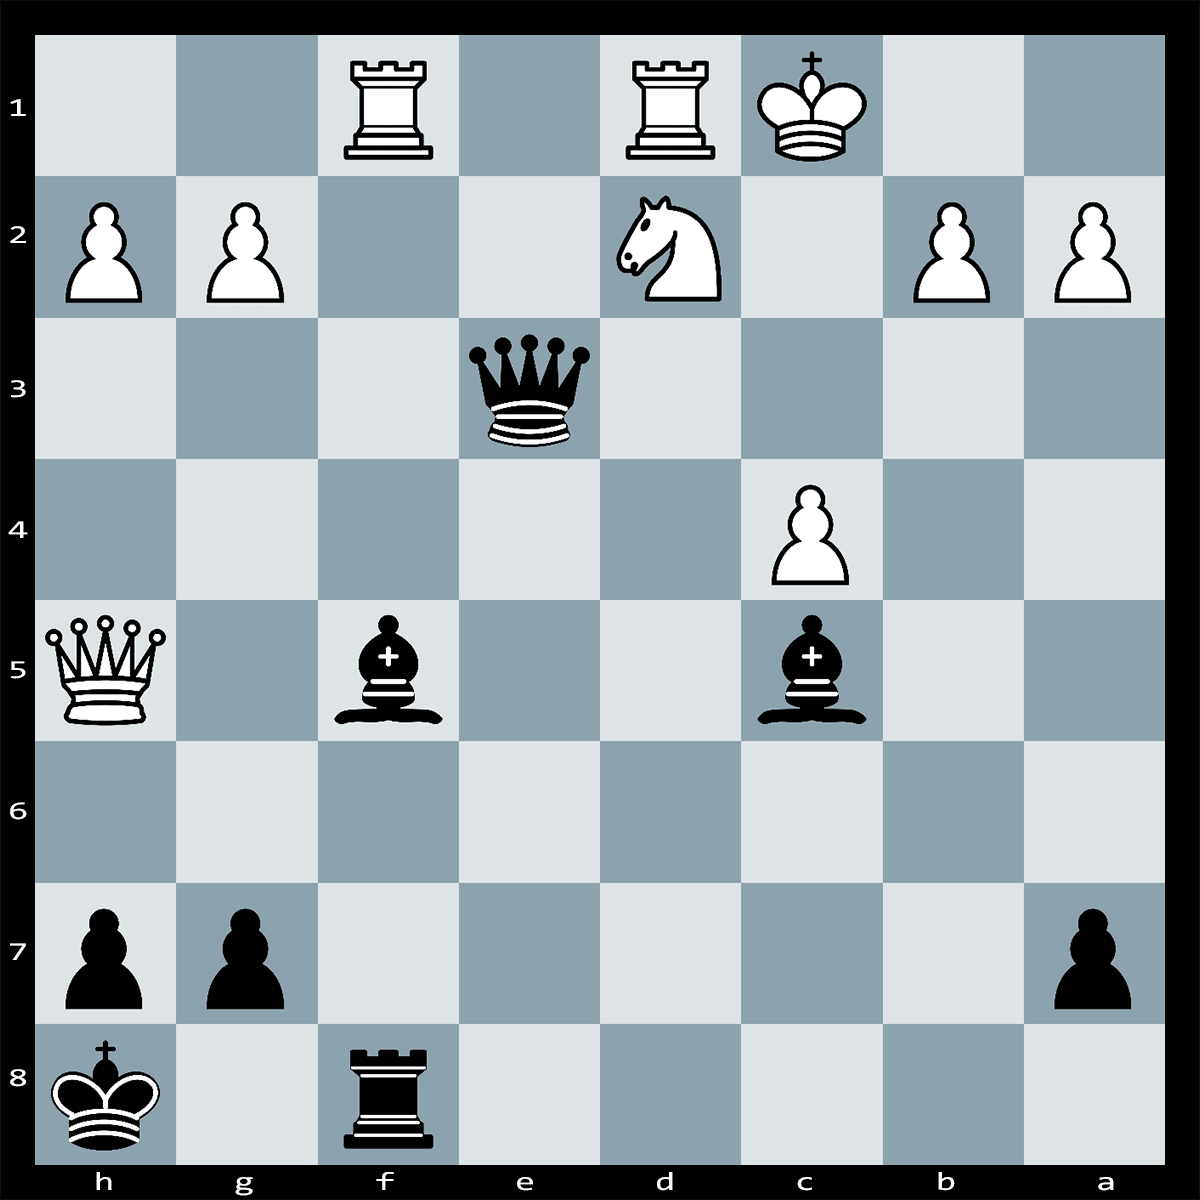 Chess Puzzle #330 | It's Black's turn to play, Checkmate in two moves. Difficulty: Easy.